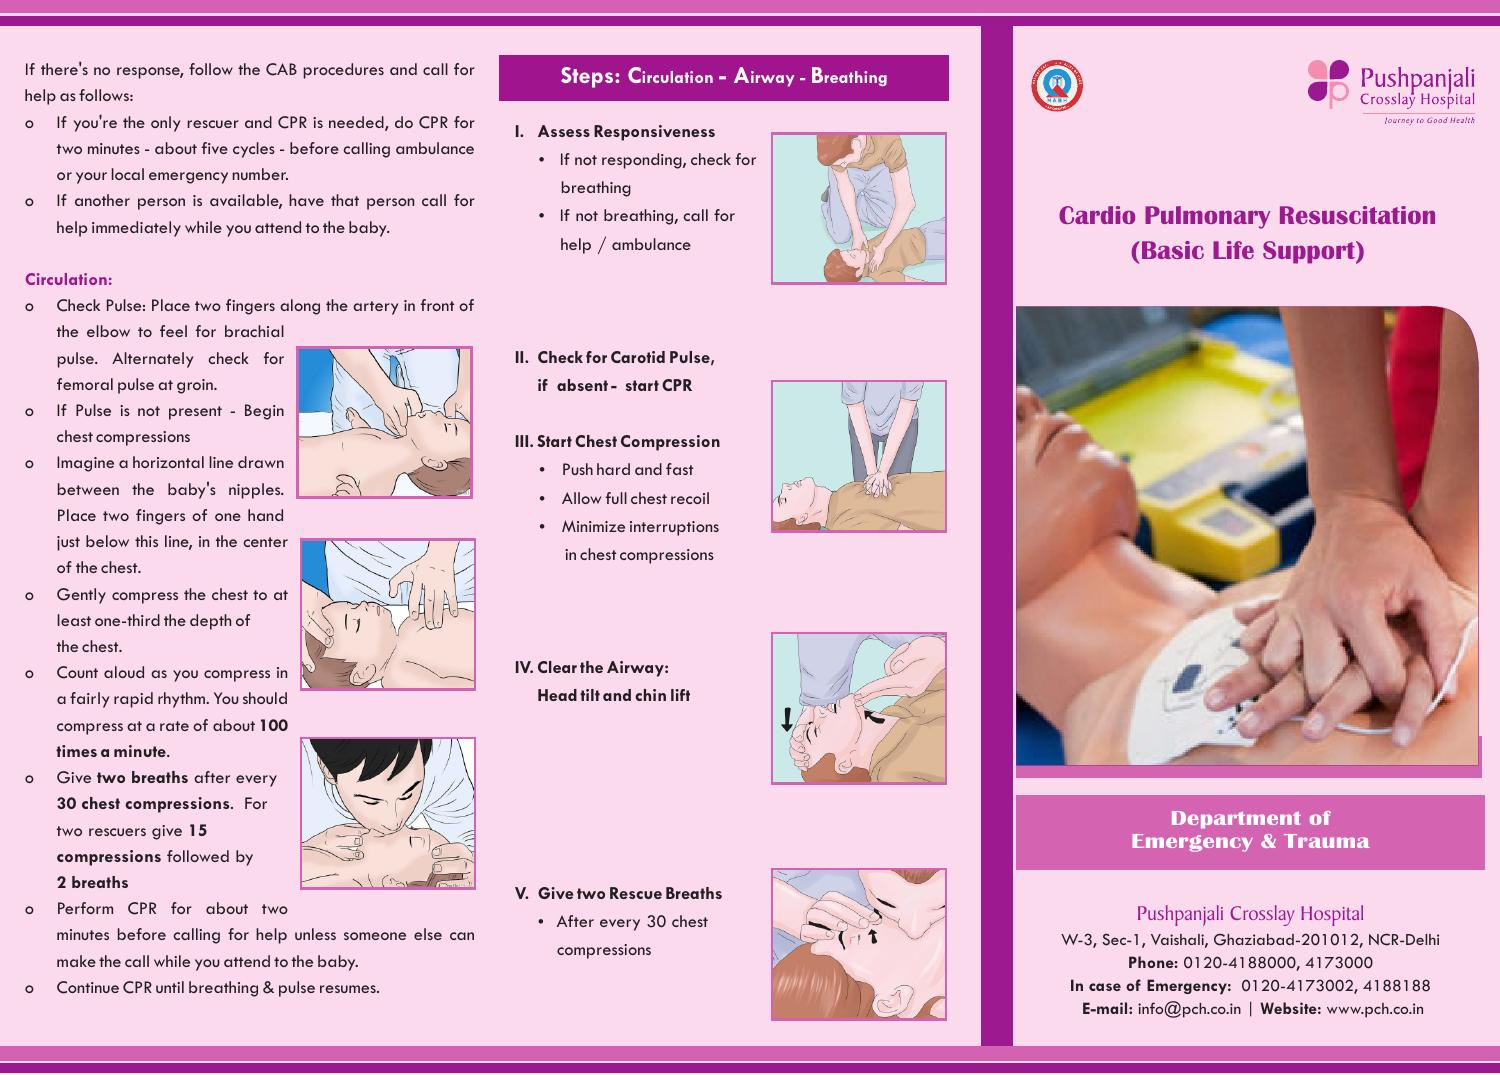 Cpr brochure by Pushpanjali Crosslay Hospital - issuu